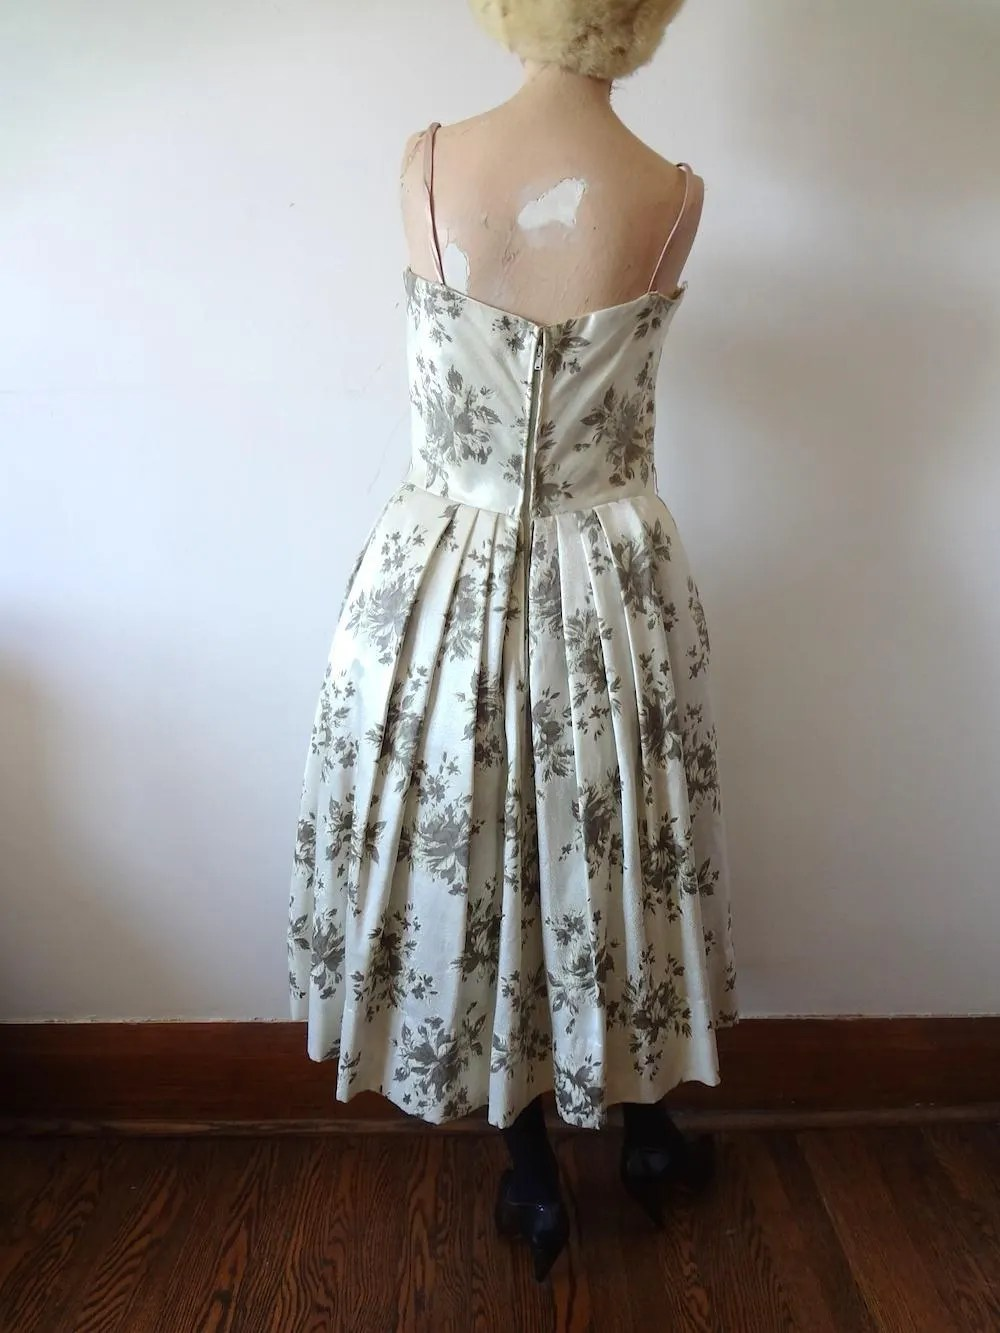 I won money in cutie garden & how to withdraw money to my bank/paypal? 1950s Party Dress / Lorrie Deb floral print silk satin